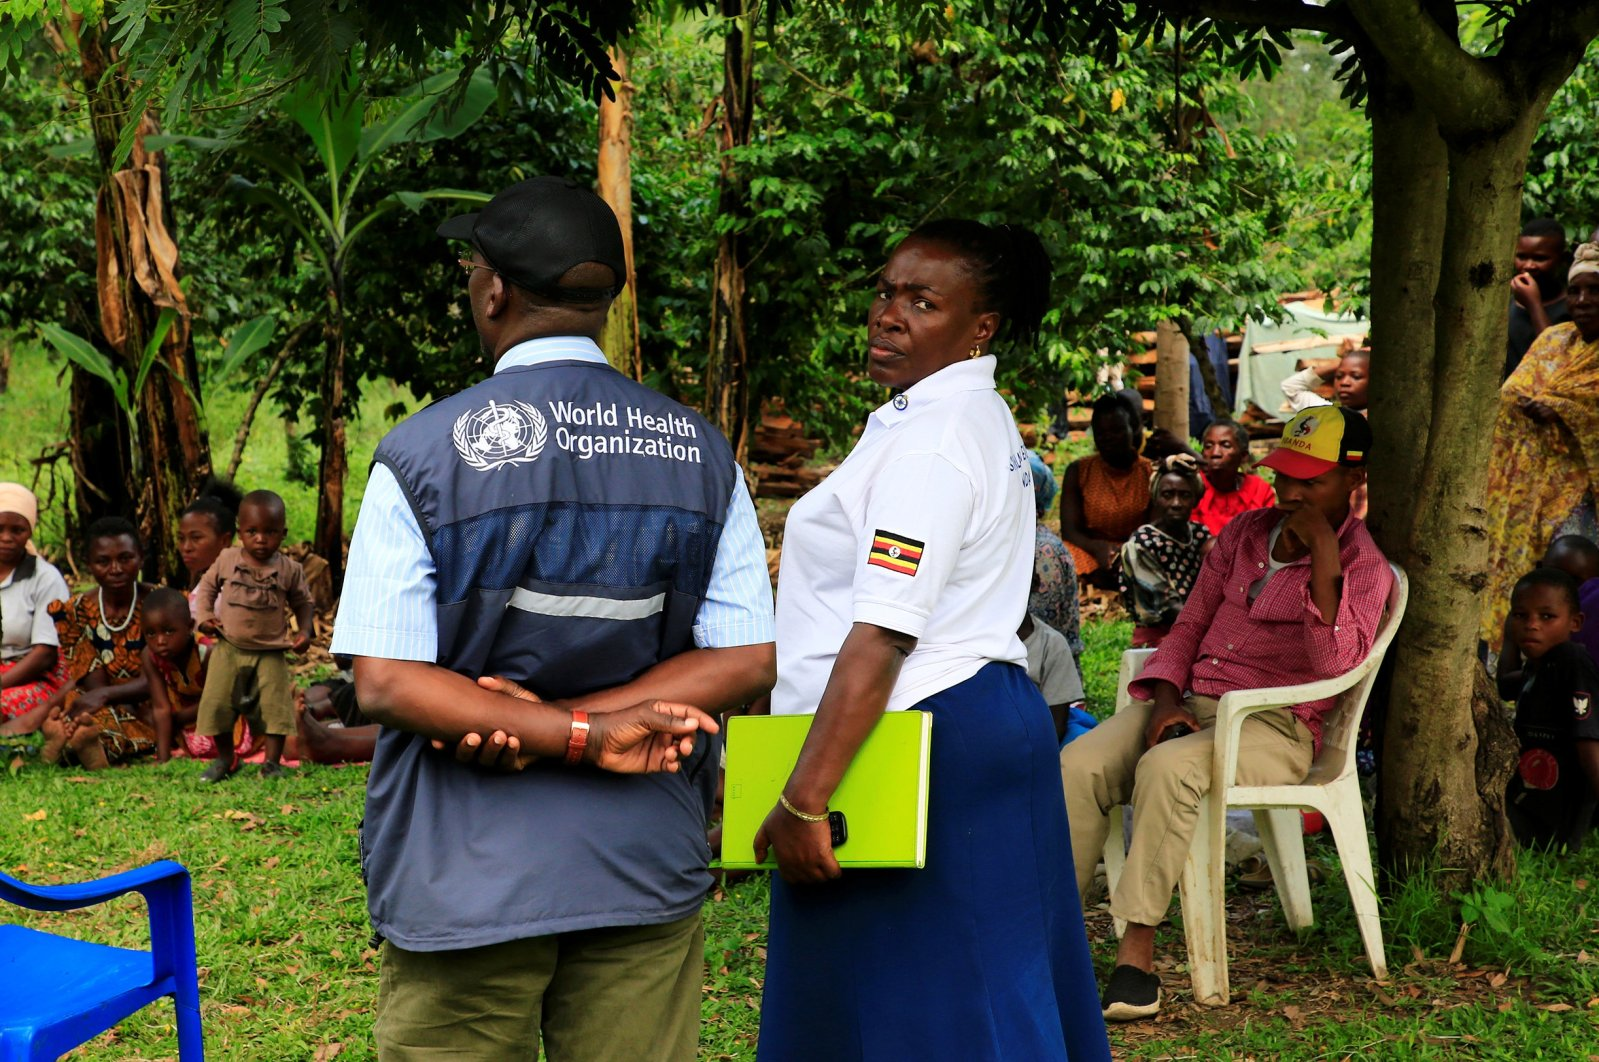 World Health Organization (WHO) officials and Ugandan health workers inform the community of Kirembo village, near the border with the Democratic Republic of Congo, about Ebola vaccine, in Kasese district, Uganda June 15, 2019. (Reuters Photo)